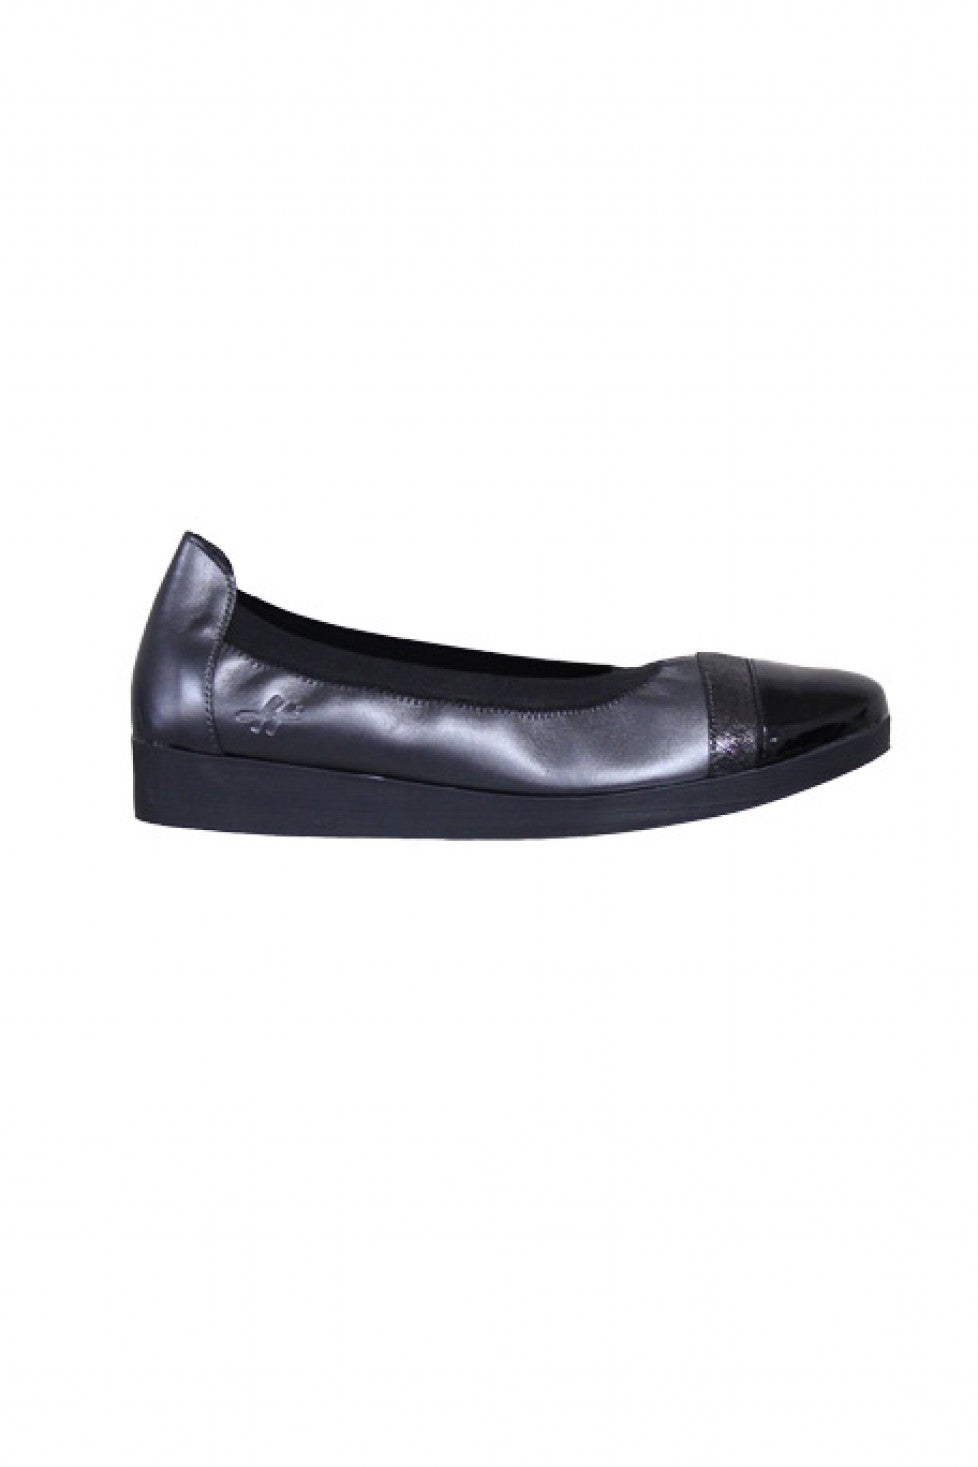 Anthracite Comfortable Hirica Shoe Style and Grace